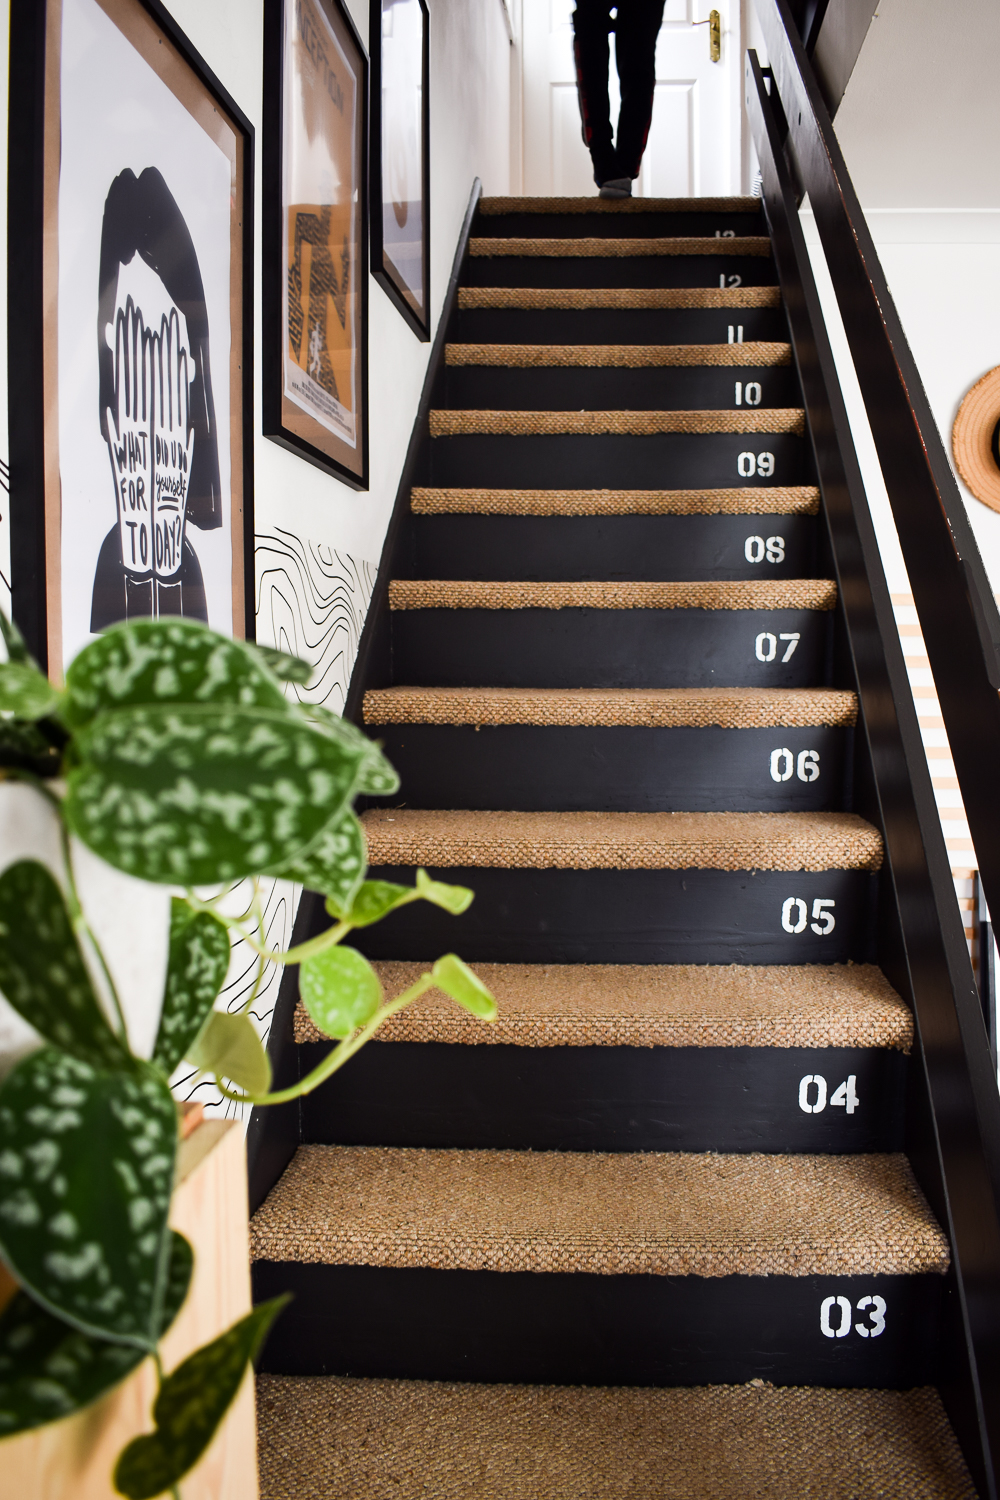 Painted black stairs with carpeted treads. Gallery wall to the left of the wall